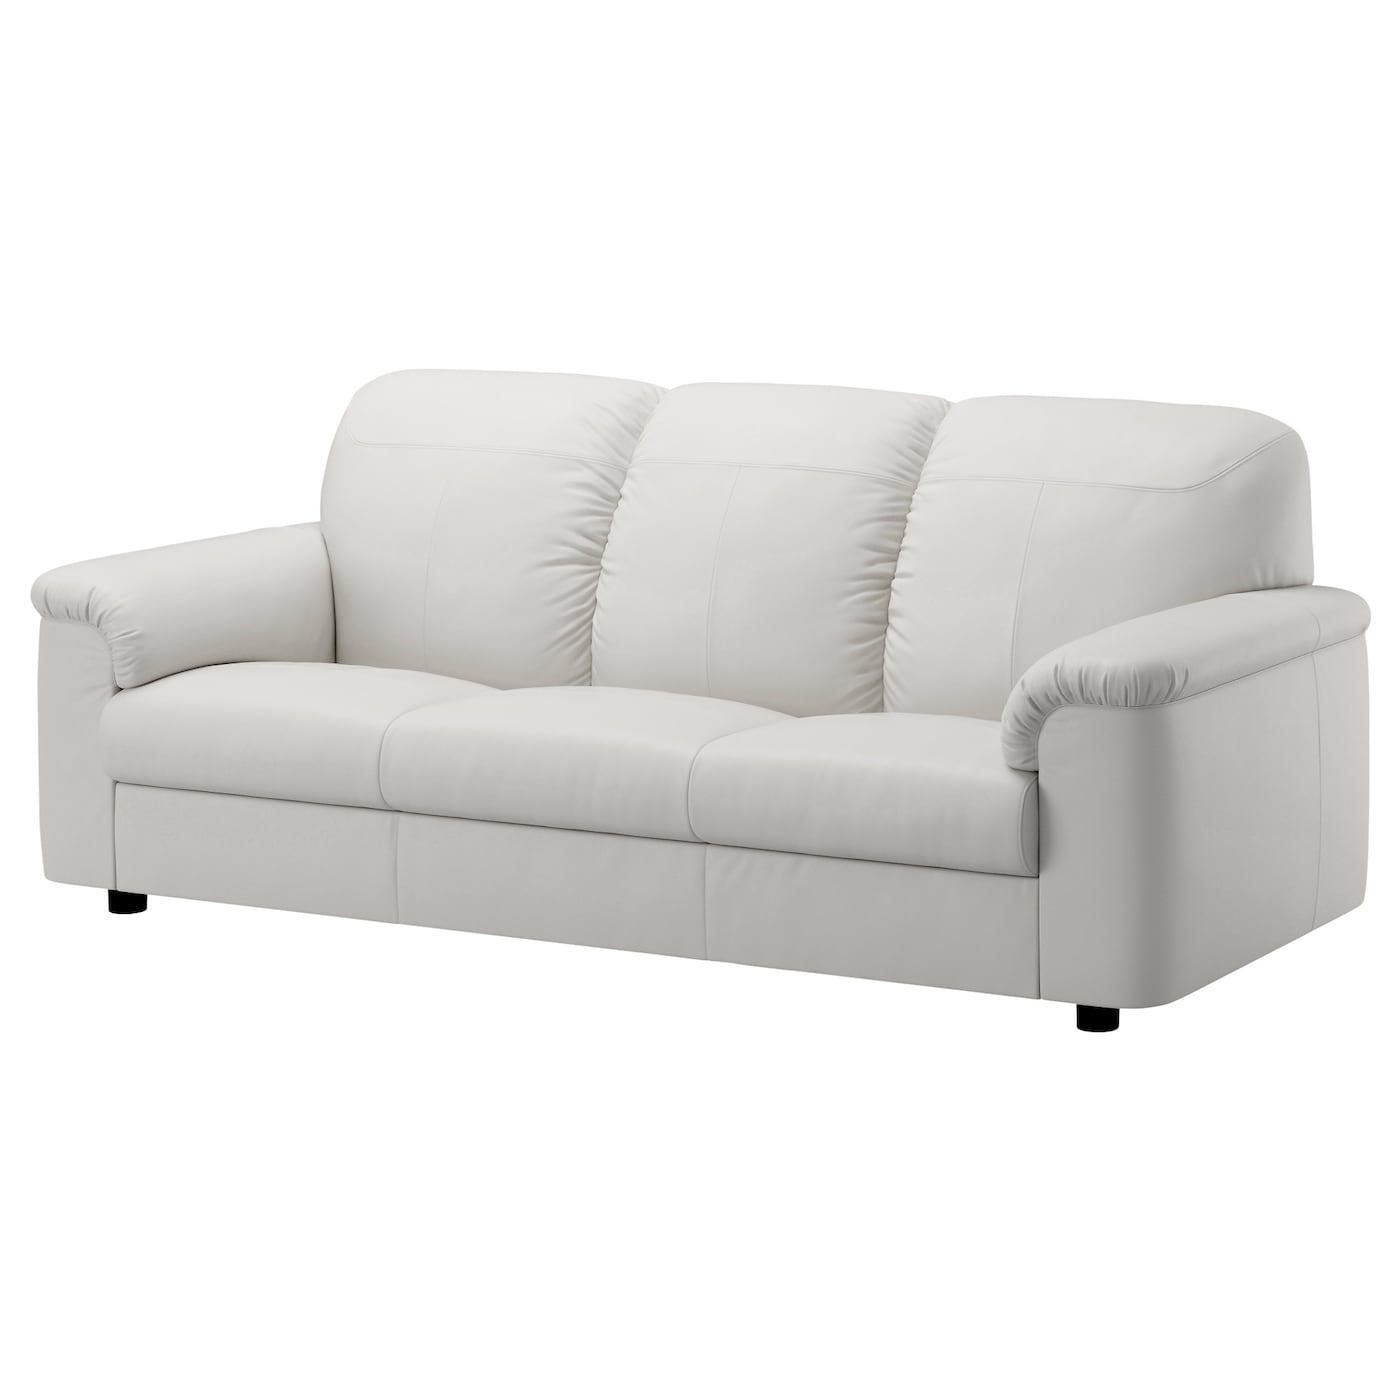 Timsfors three seat sofa mjuk kimstad off white ikea for White divan chair